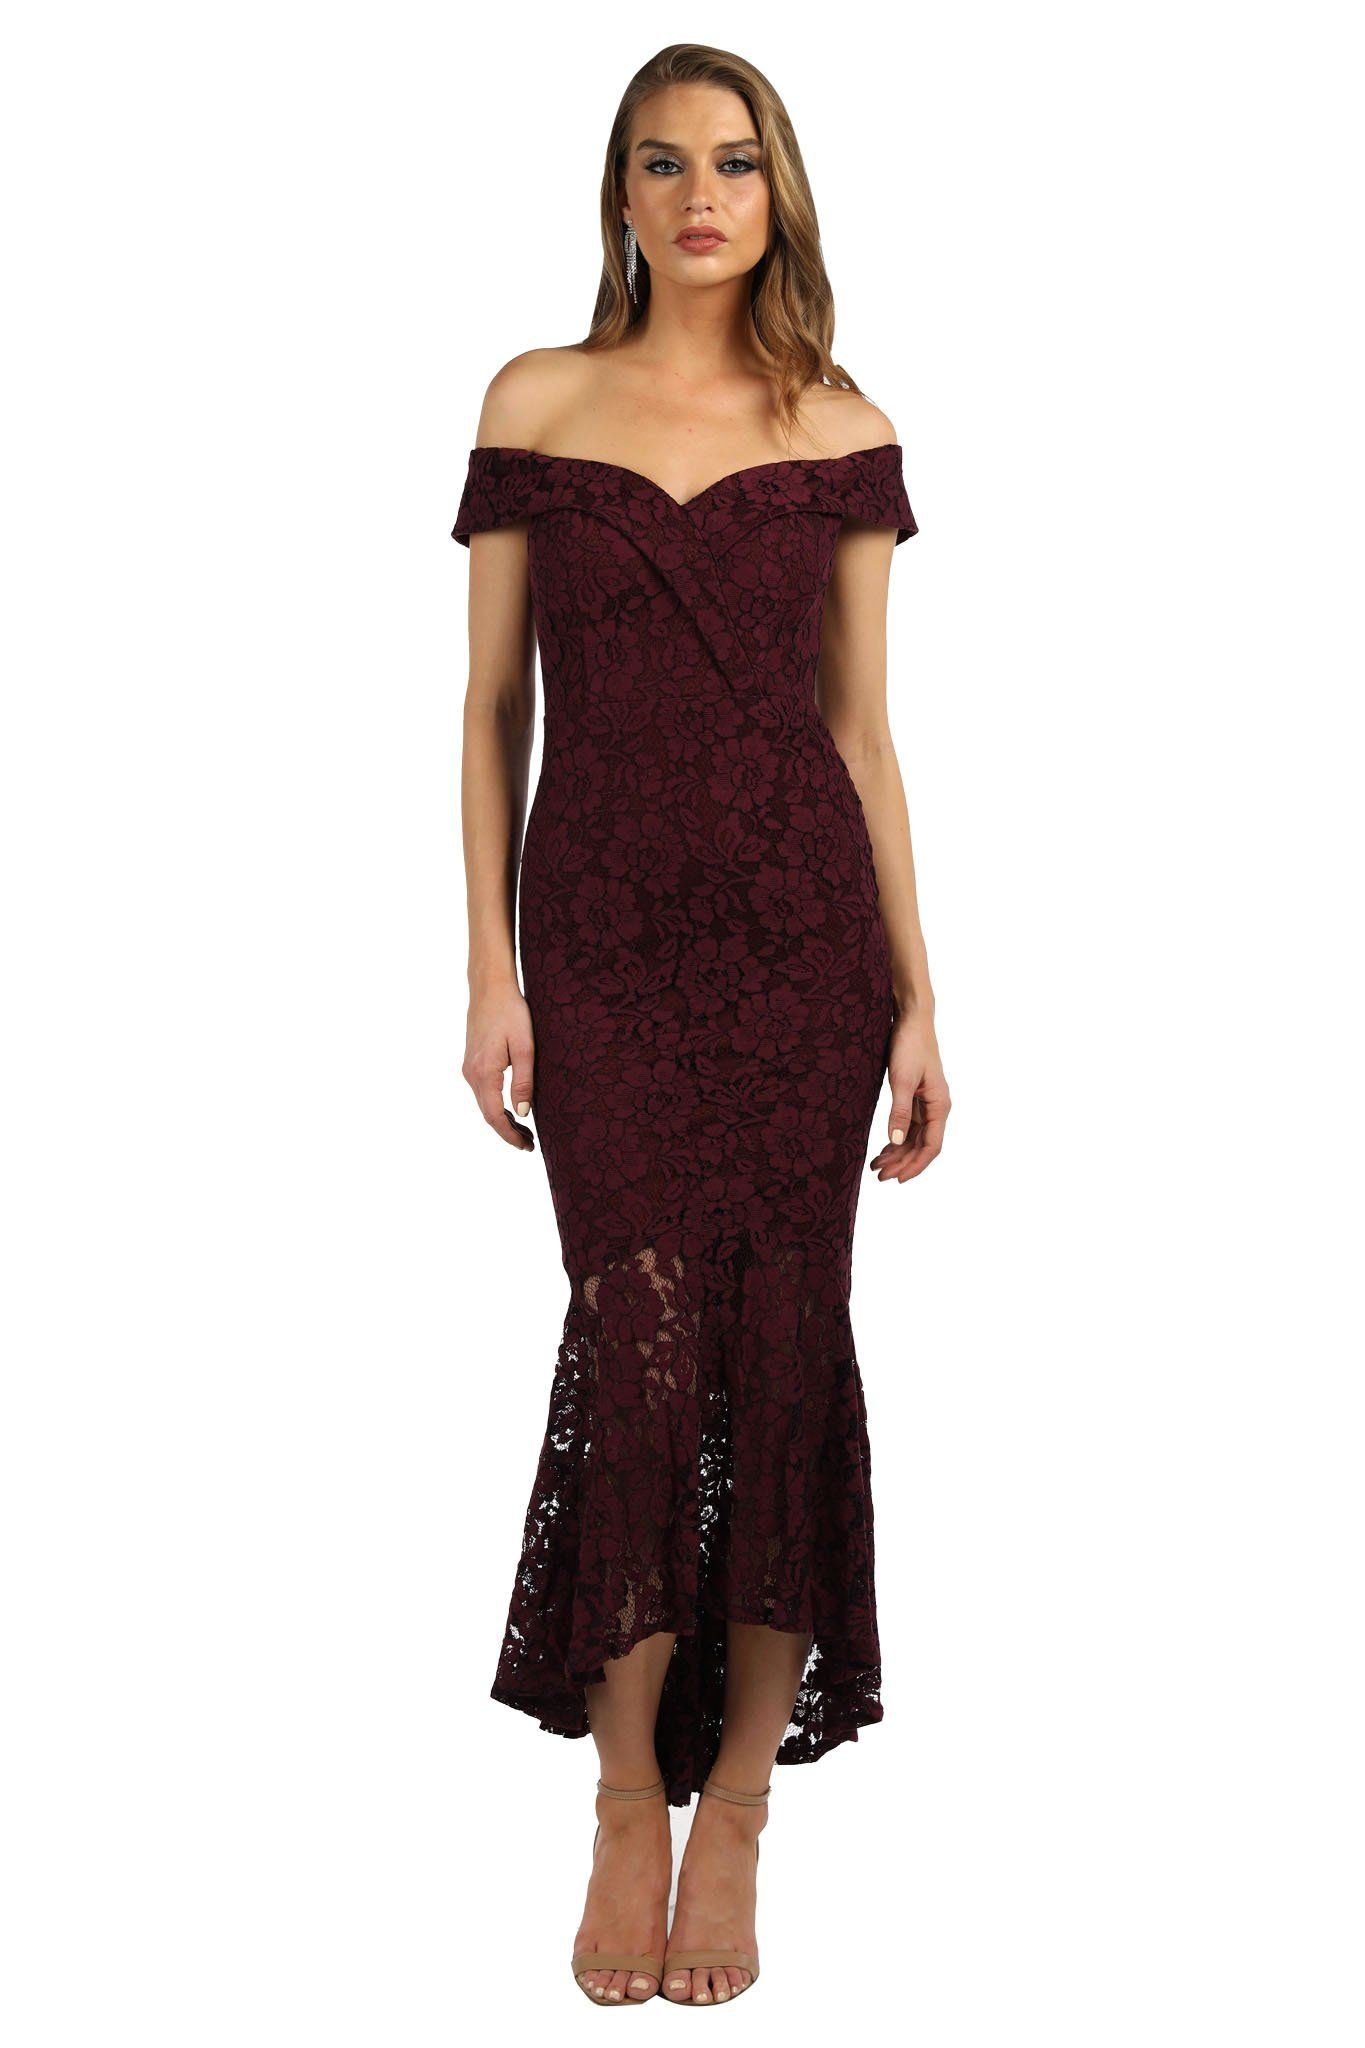 Burgundy colored lace dress featuring off-shoulder neckline with cap sleeves, sweetheart neckline, fitted bodice and high low fishtail skirt